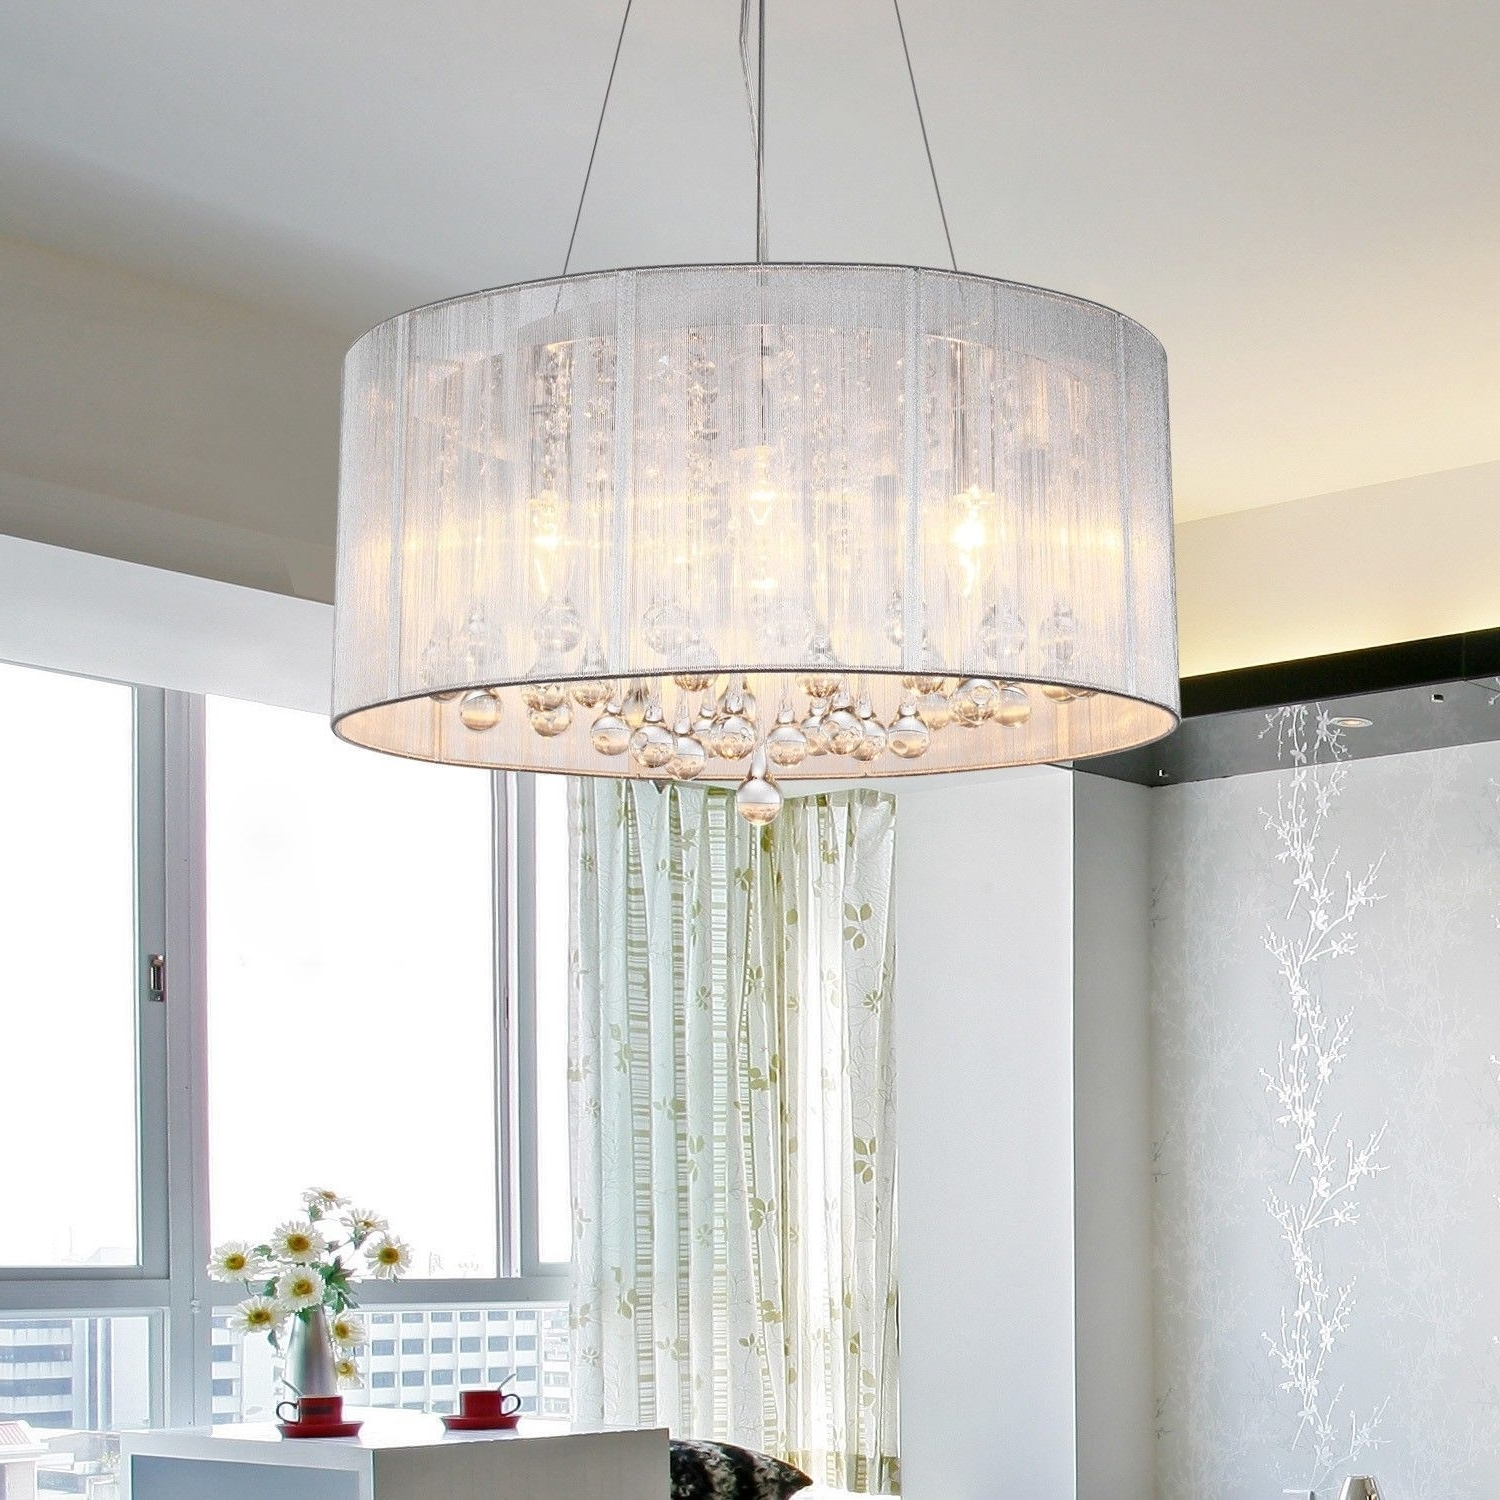 Chandelier Light Shades Within Fashionable Awesome Lamp Shades For Chandeliers Chandelier From The Elegant (View 3 of 20)